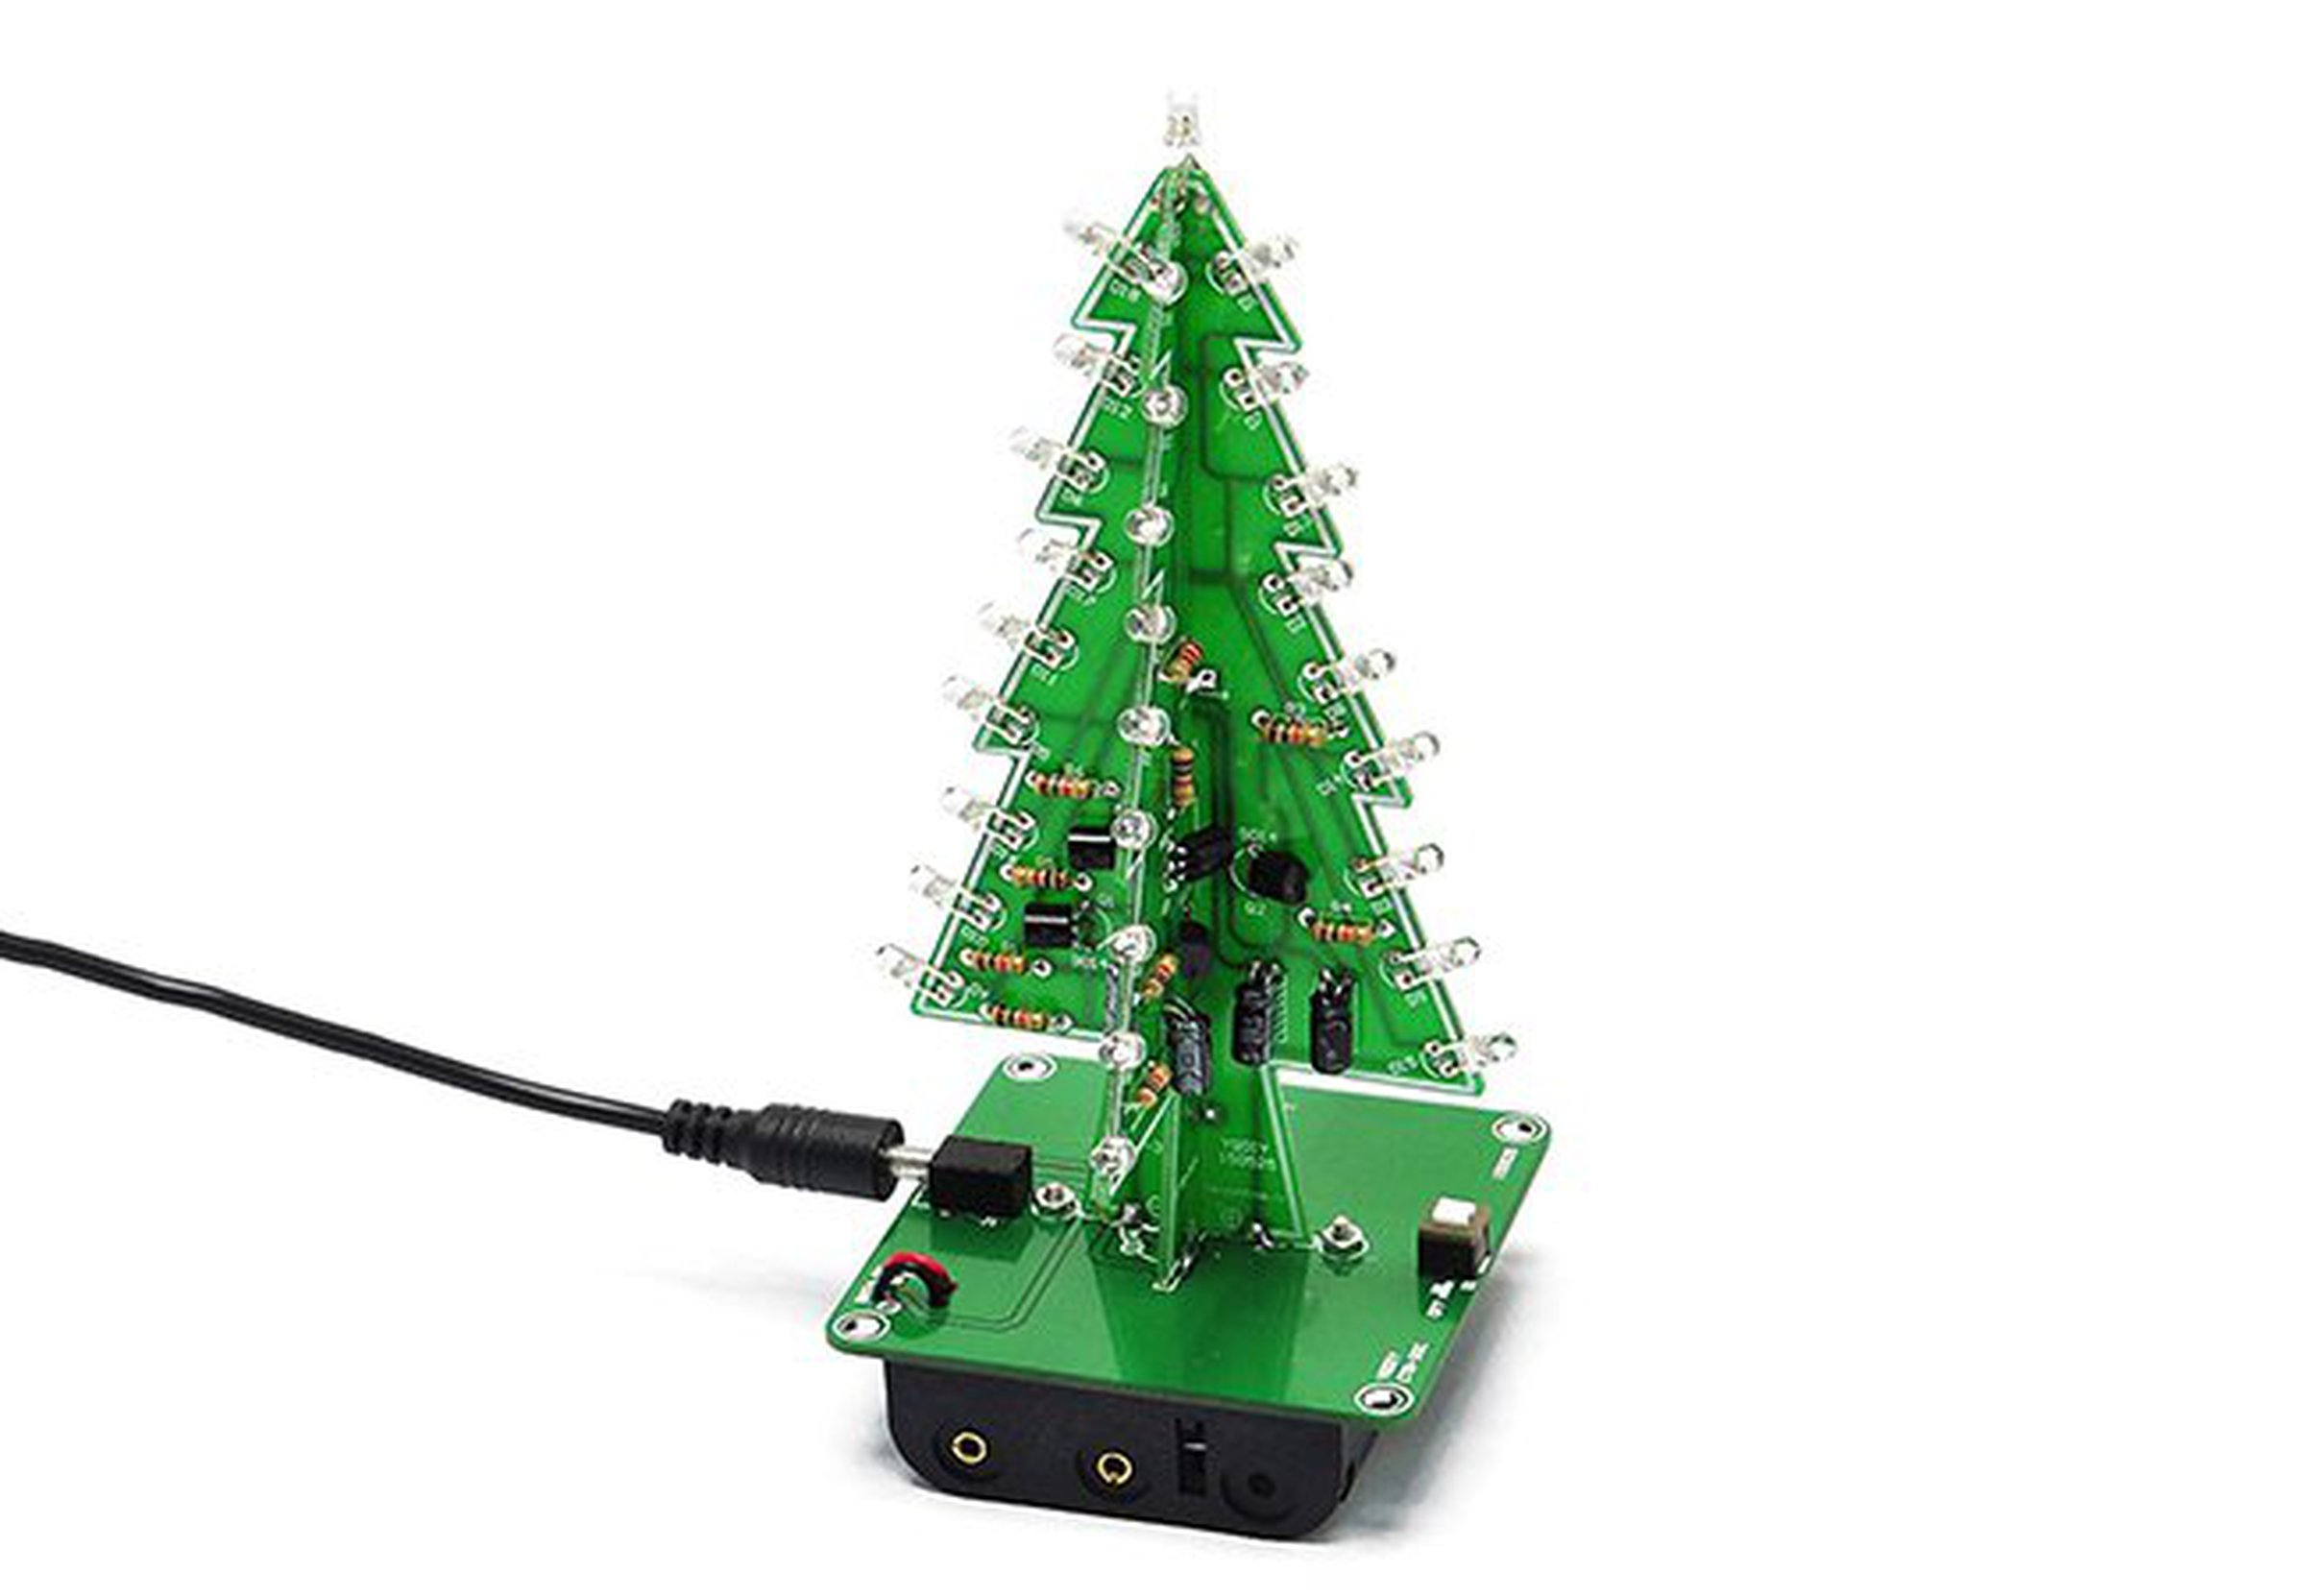 DIY 3D Xmas Tree 7 Color Flash LED Kits(7213) from ICStation on Tindie